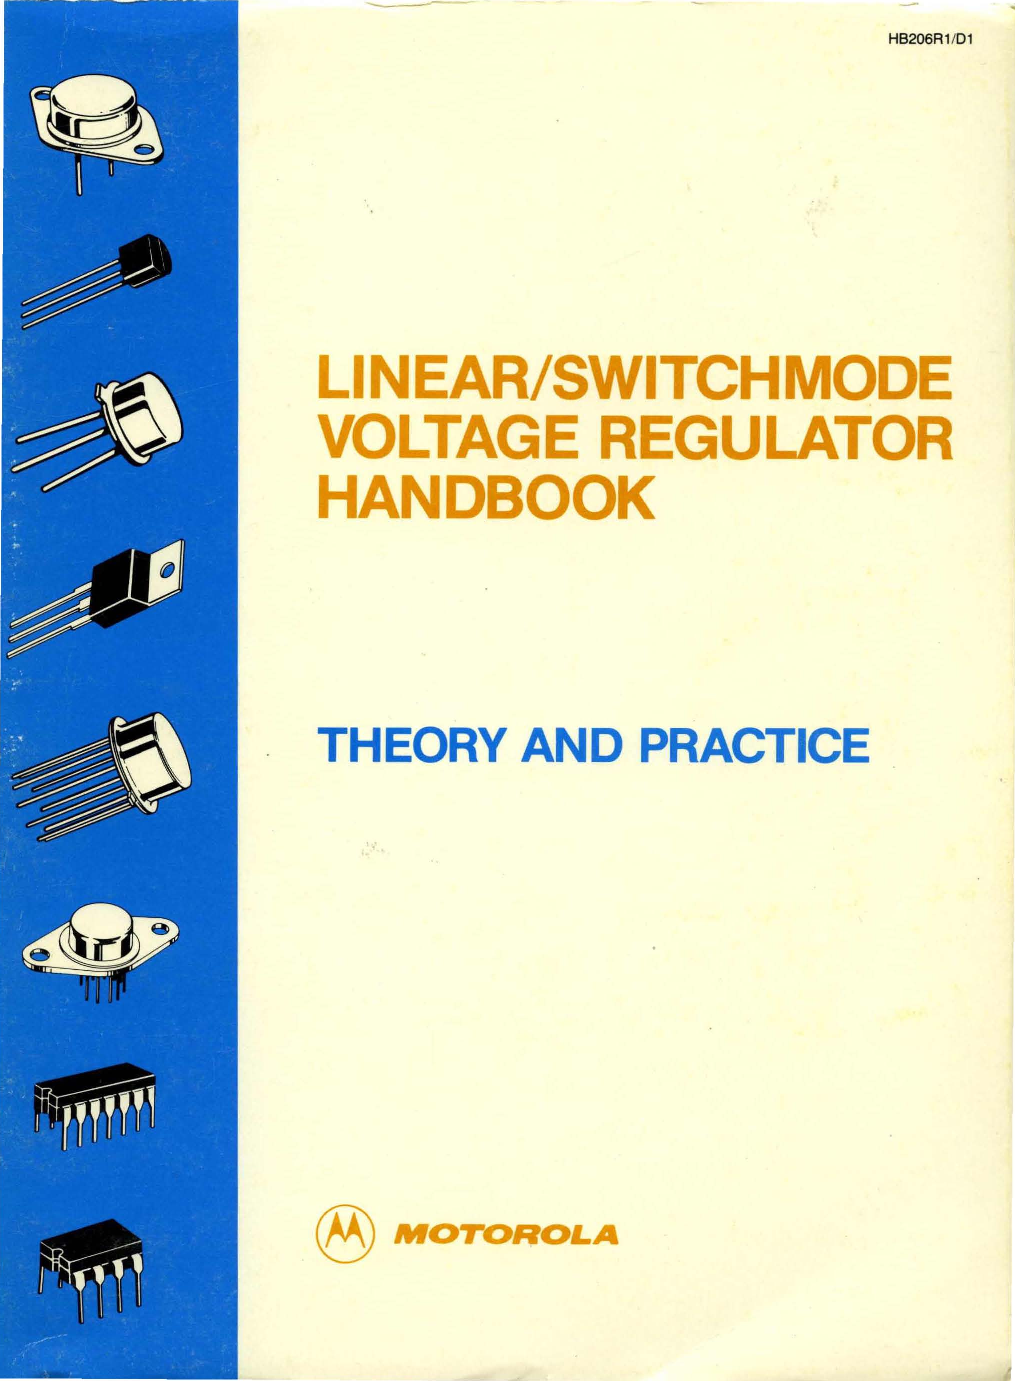 1982 Linear Switchmode Voltage Regulator Handbook Lm393lm339comparator Oscillator Circuitcomparator Circuit